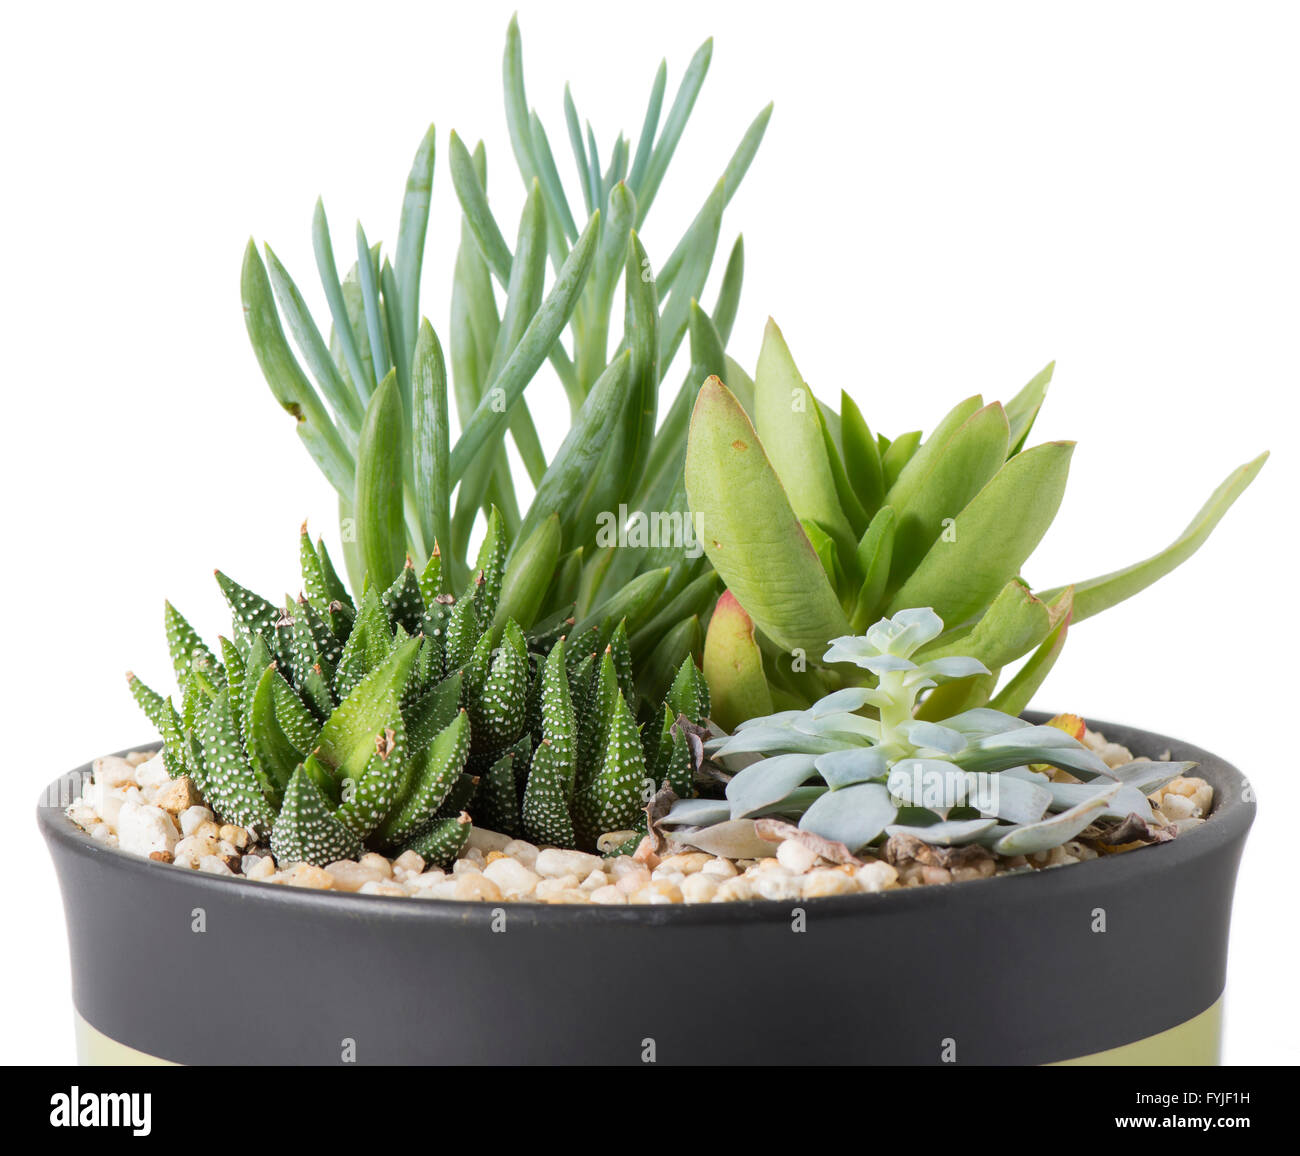 Interior Garden Plants Indoor Plant Garden With Succulent Plants In A Pot With